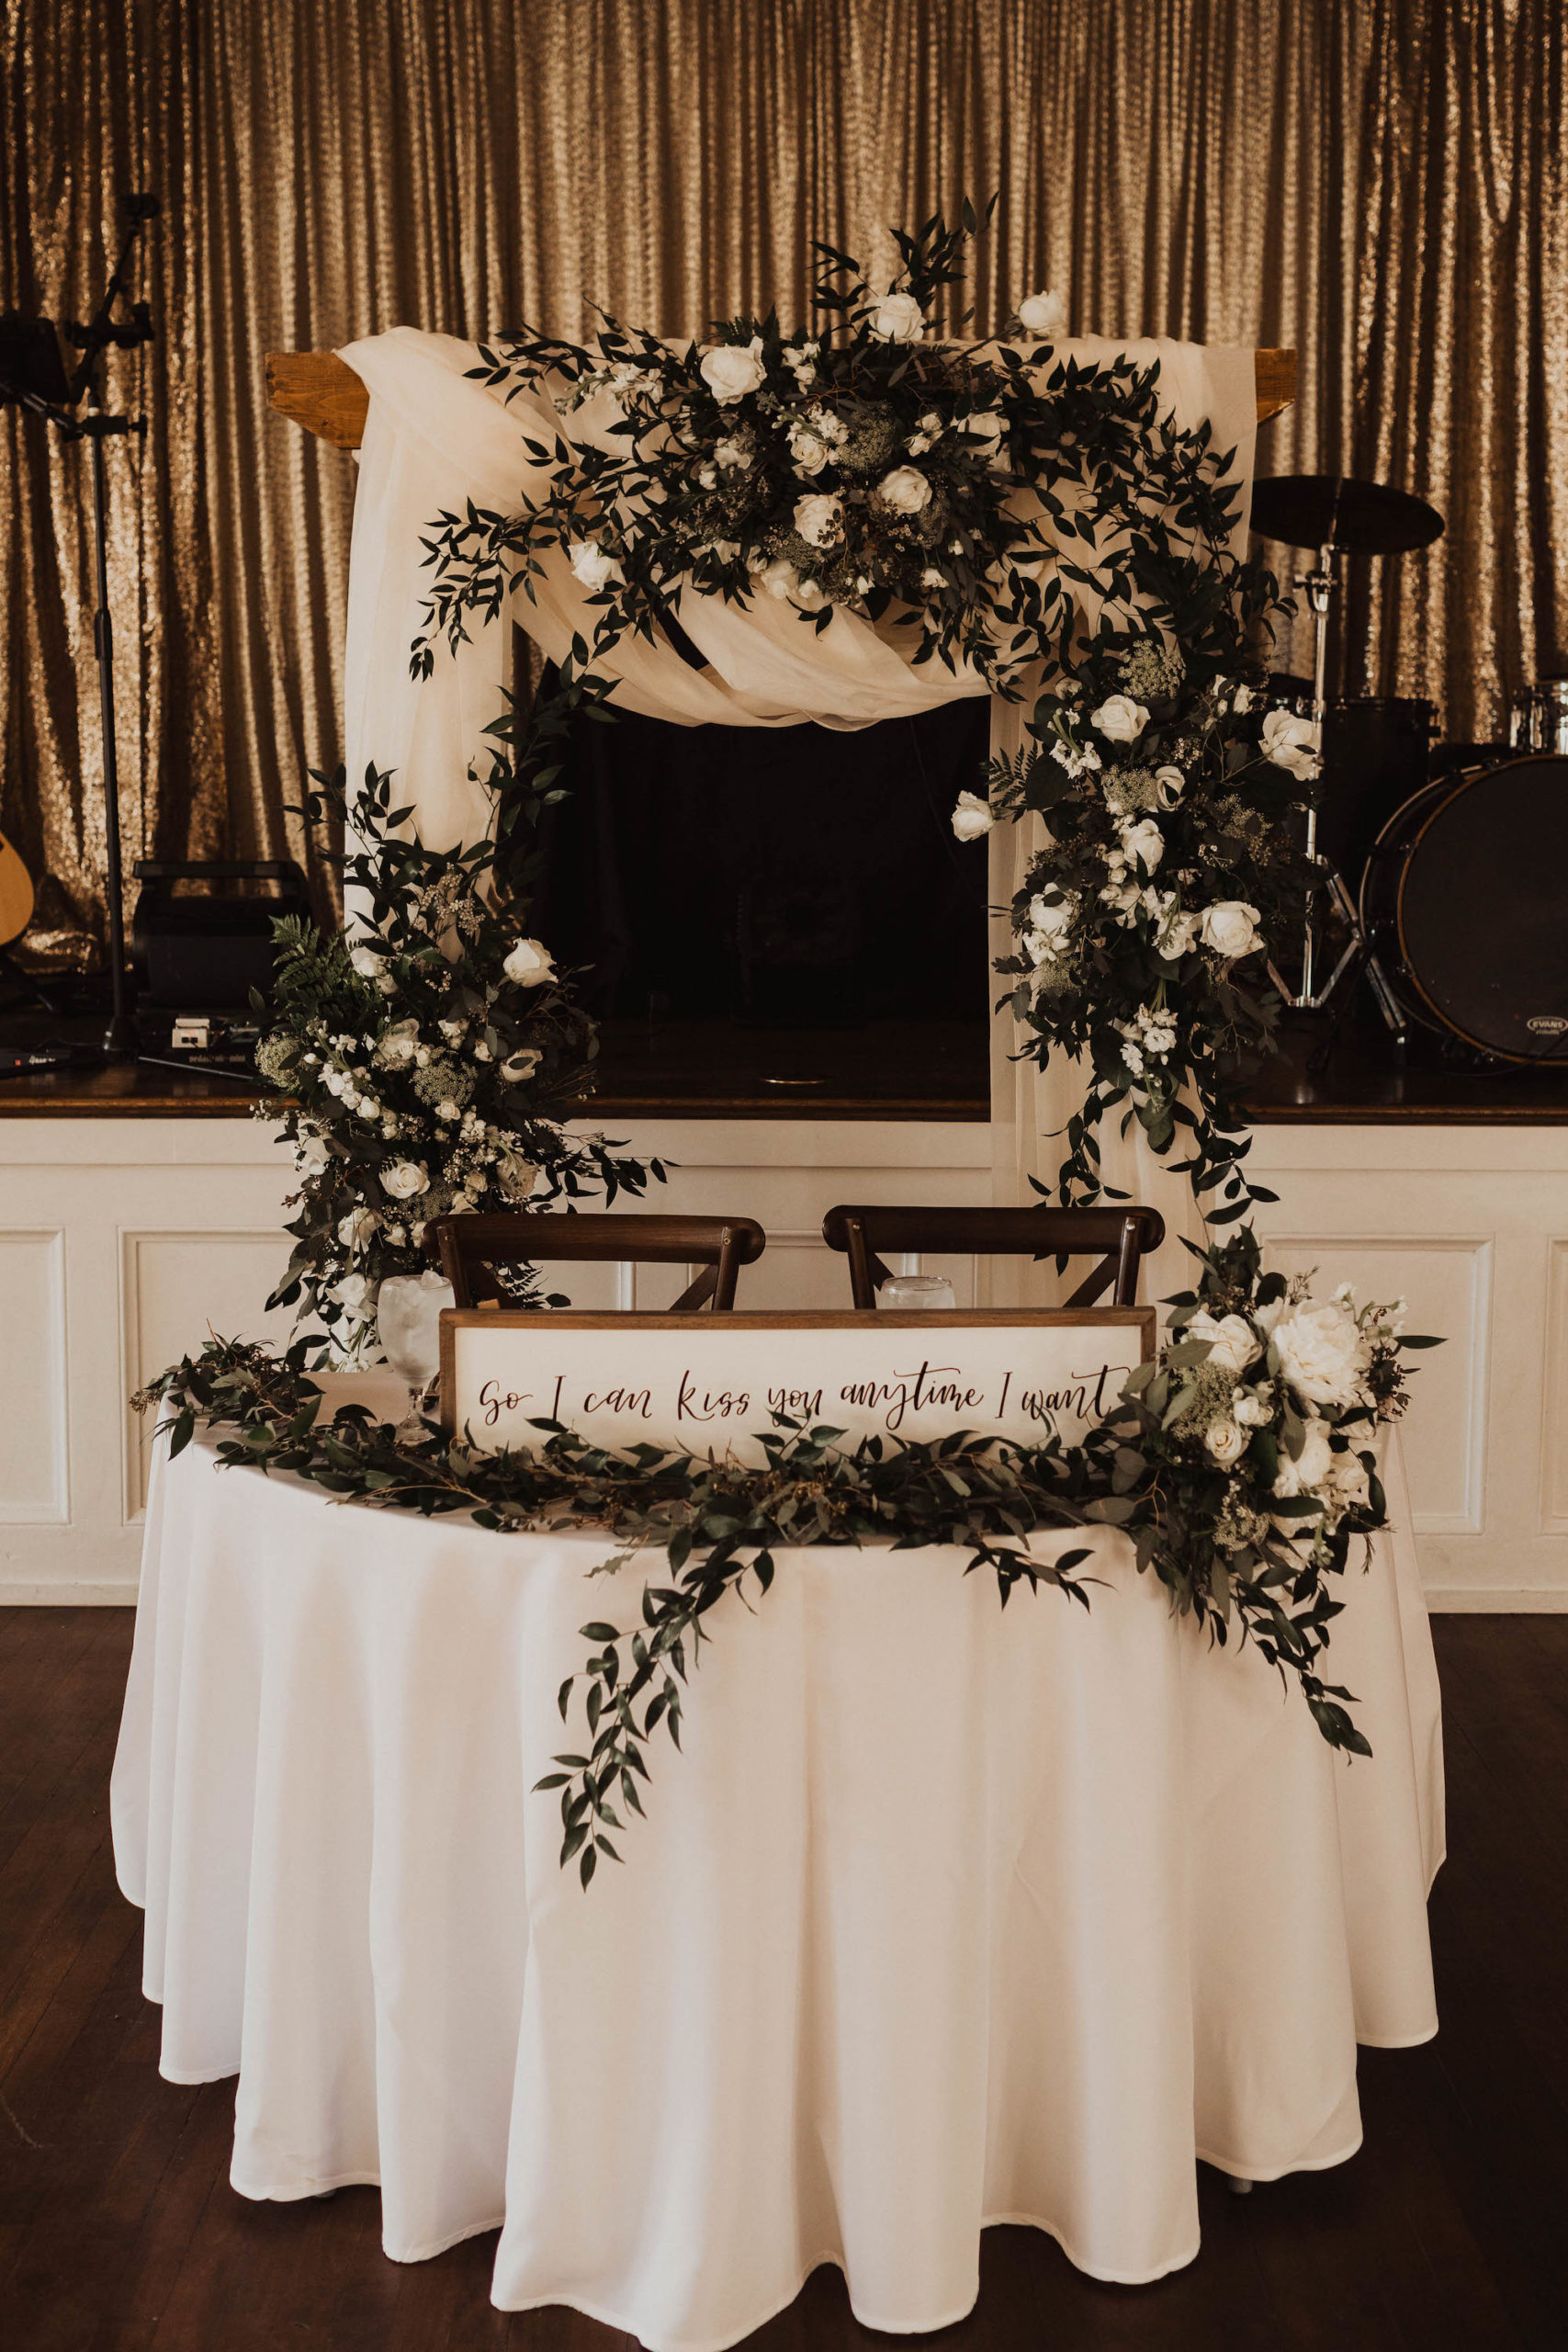 Simple Elegant Wedding Reception Decor Sweetheart Table With White Tablecloth Eucalyptus Greenery Garland Wooden Signage Wood Chiavari Chairs Arch With White Draping And Eucalyptus Greenery And Ivory Roses Arrangements Marry Me